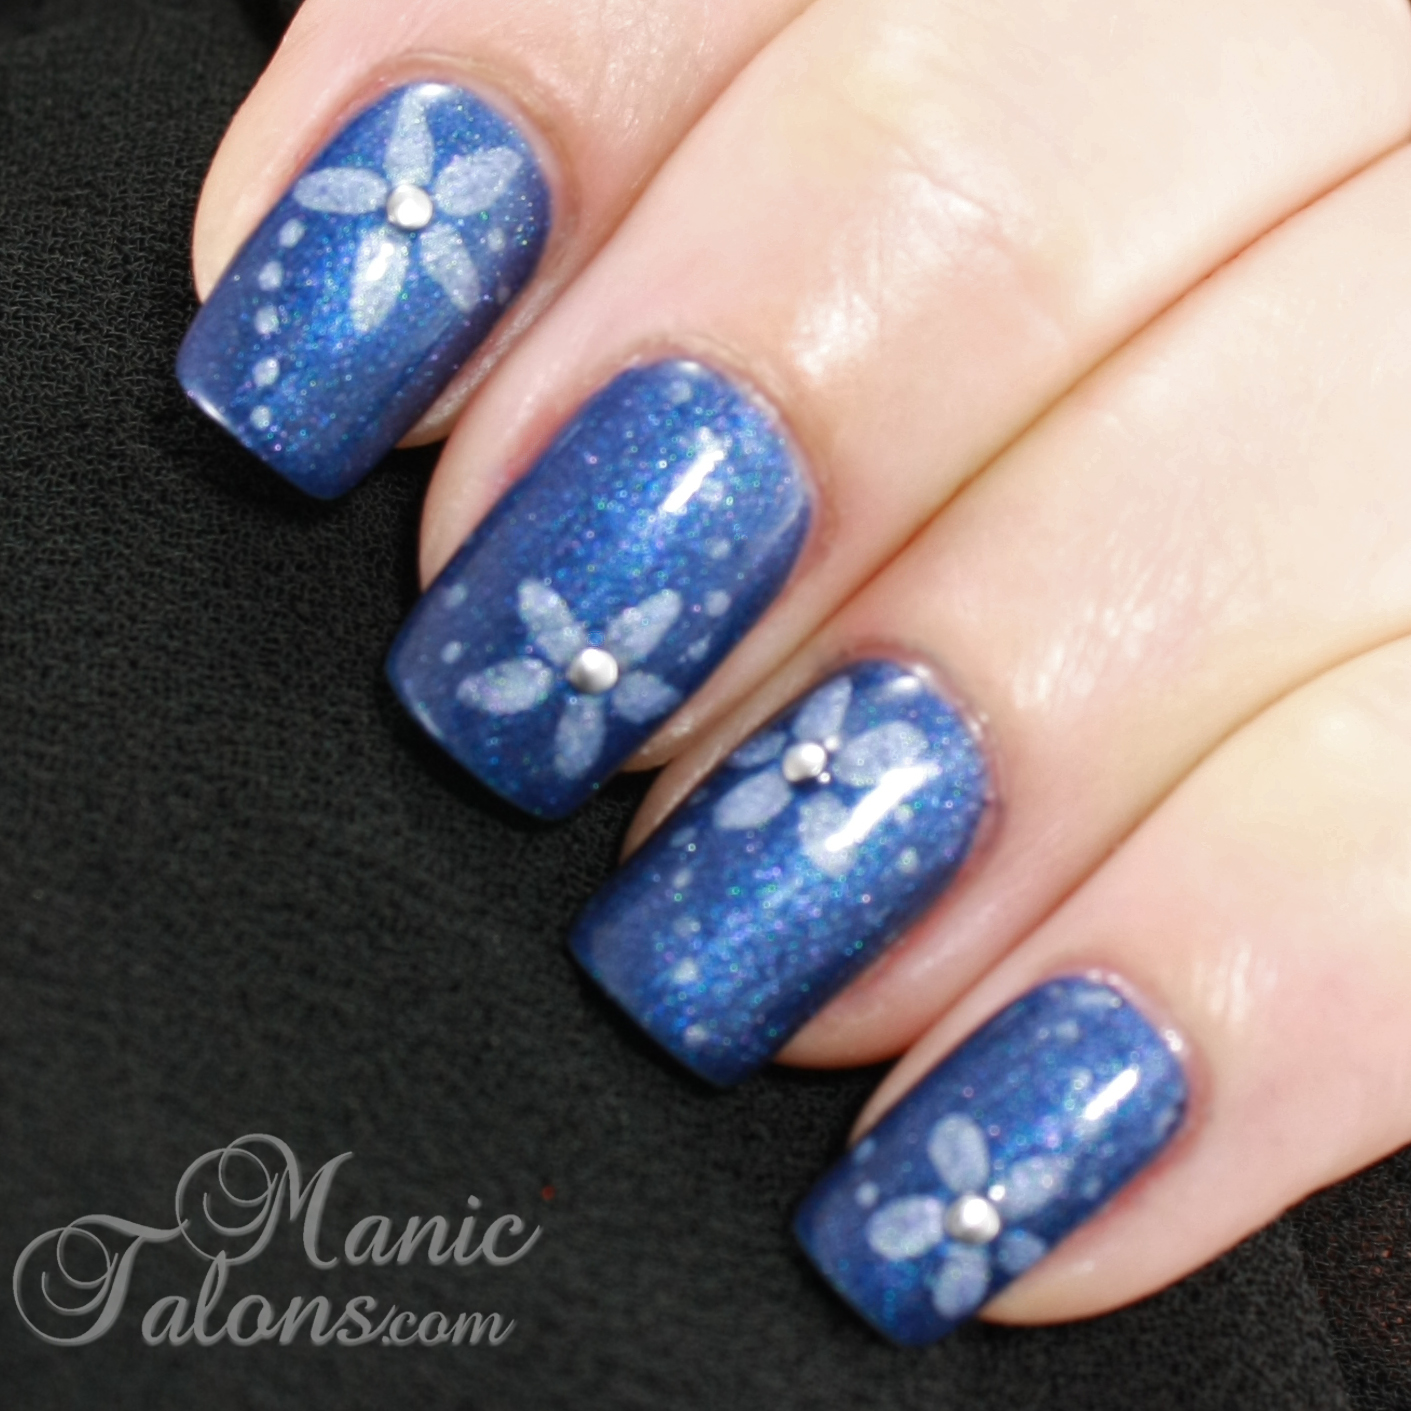 Simple Blue Flowers Nail Art